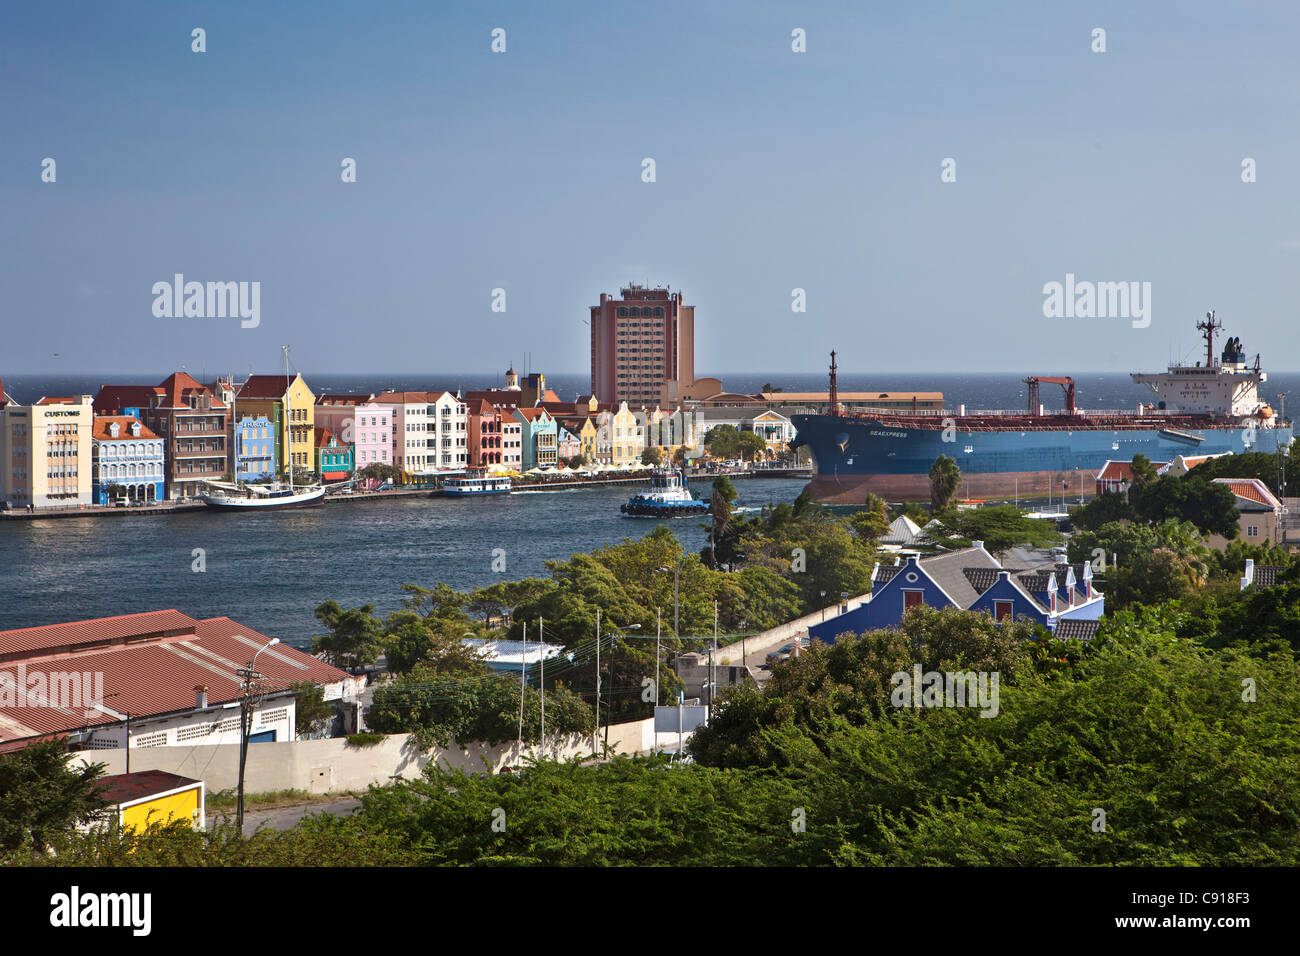 Curacao, Caribbean island, Willemstad. Historic houses on waterfront. Dusk. Oil tanker passing Sint Annabaai. - Stock Image